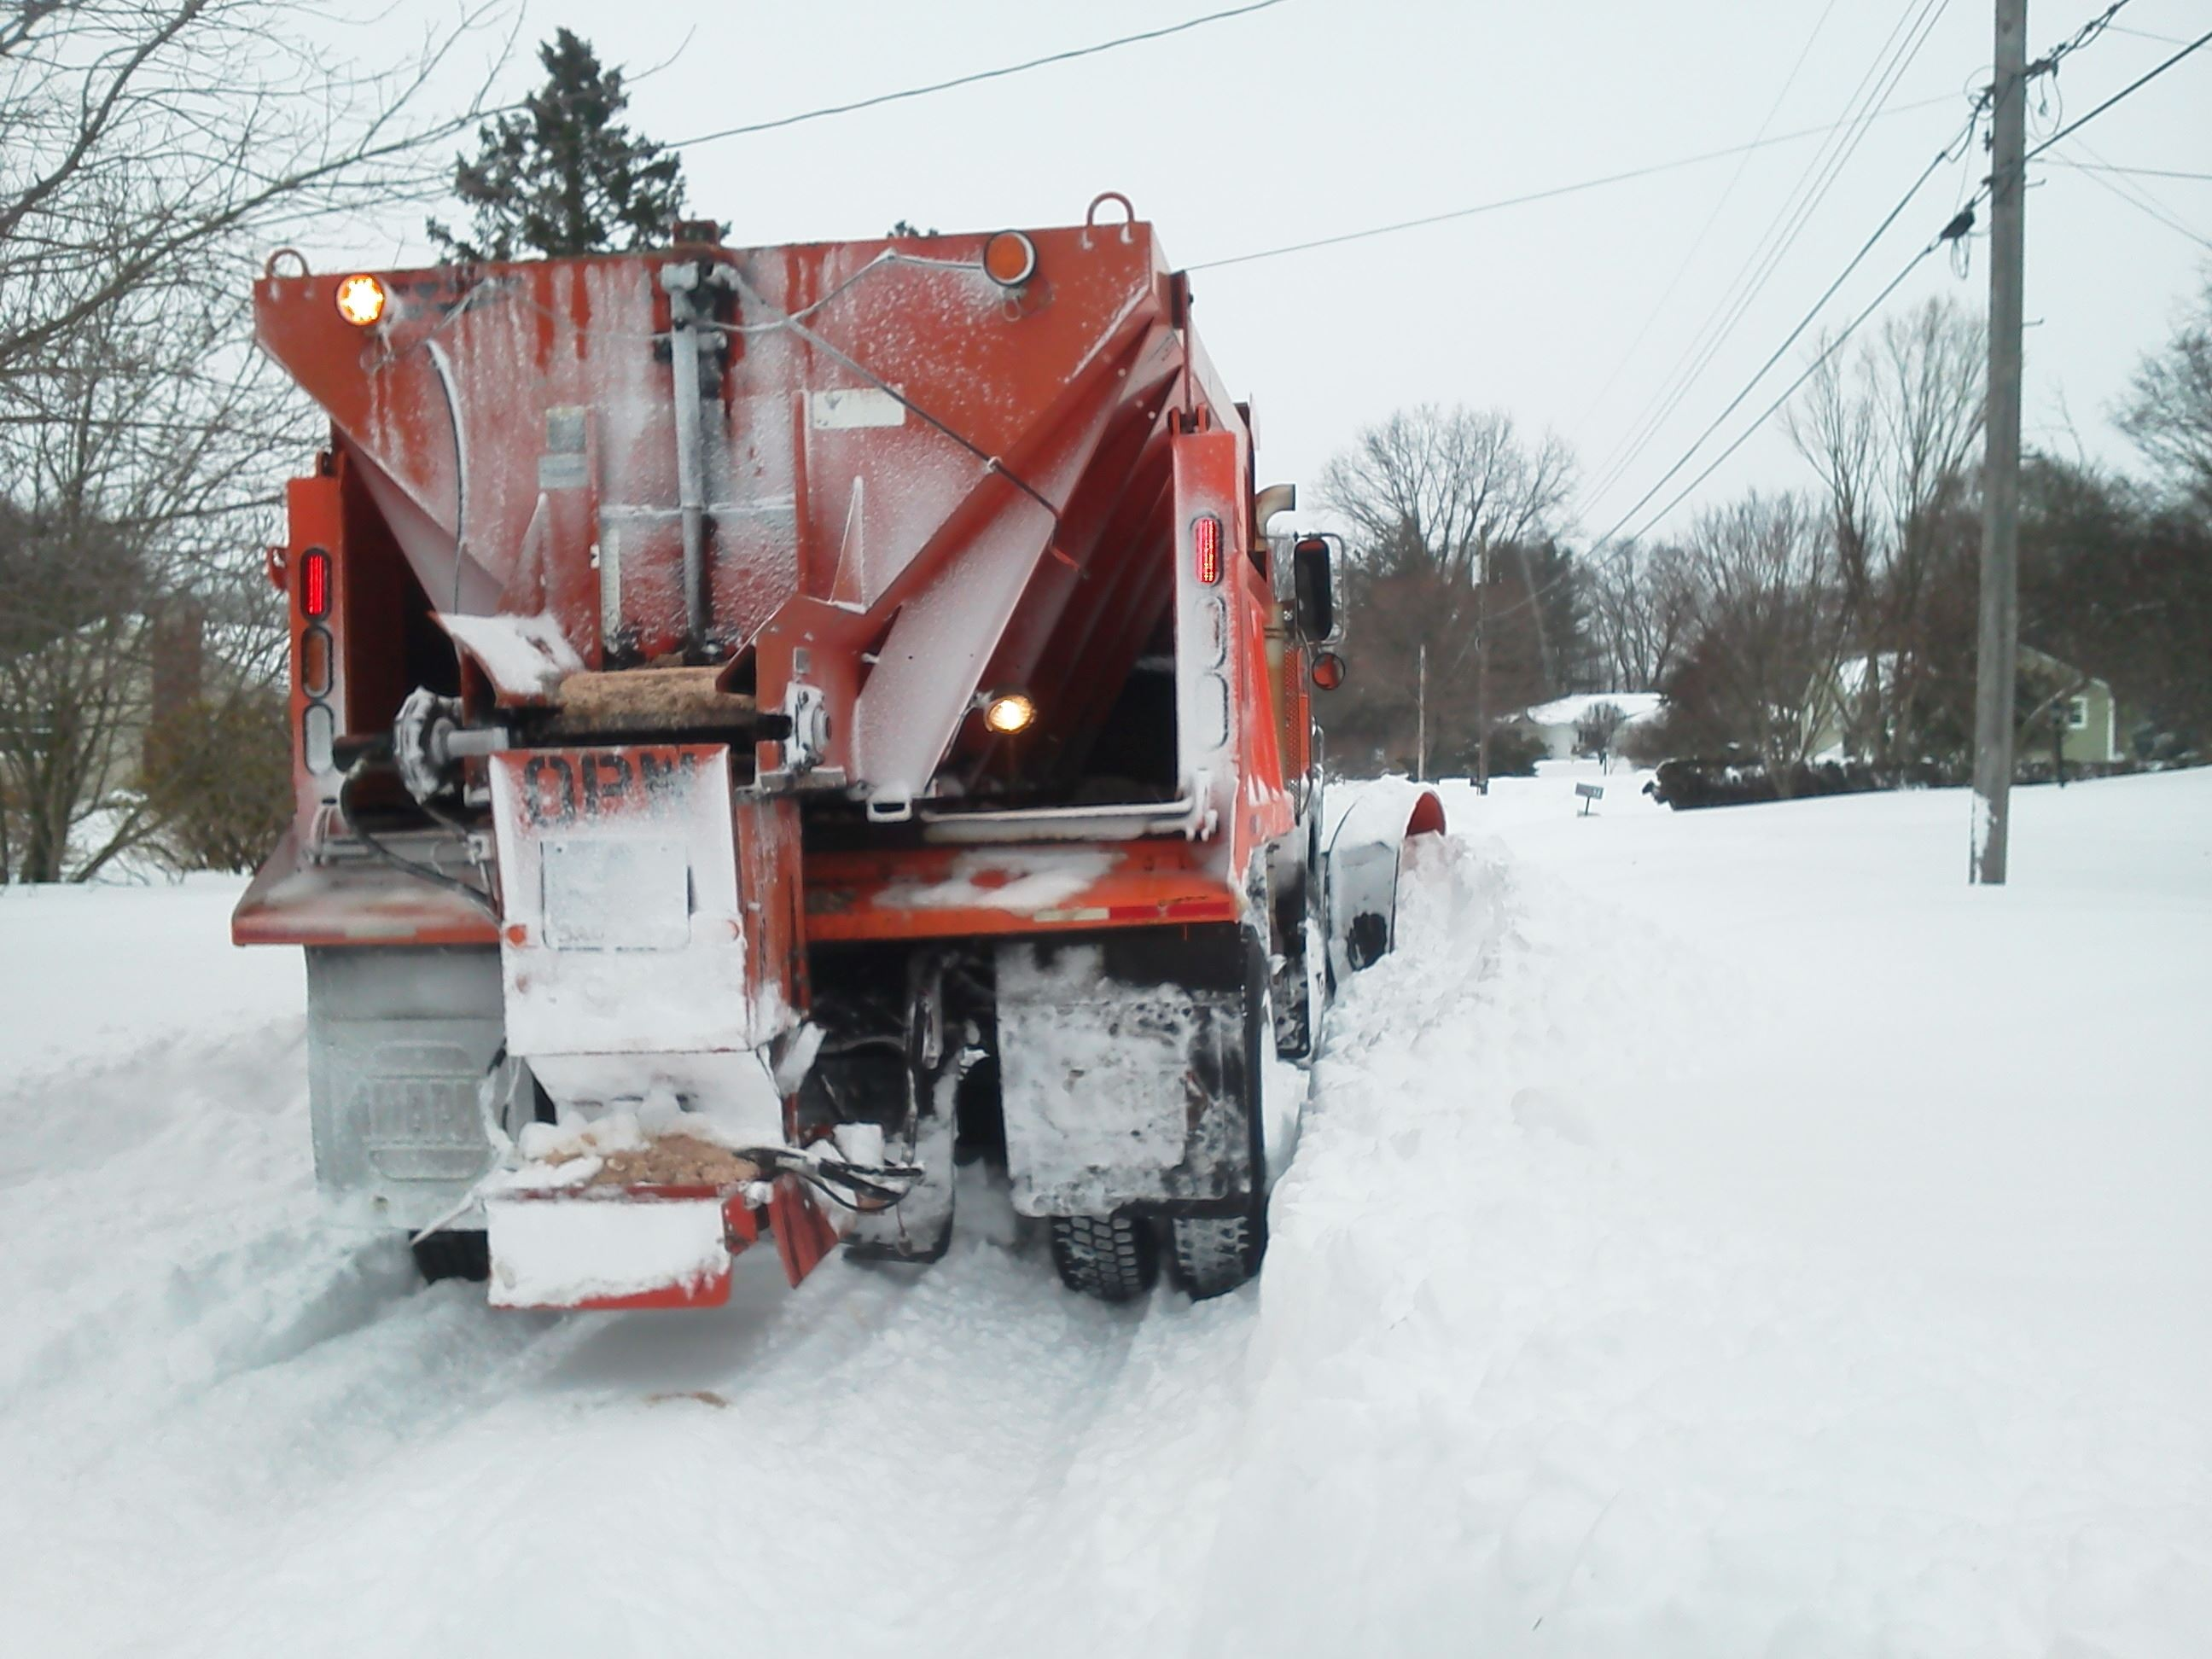 Back of Orange plow truck in snow